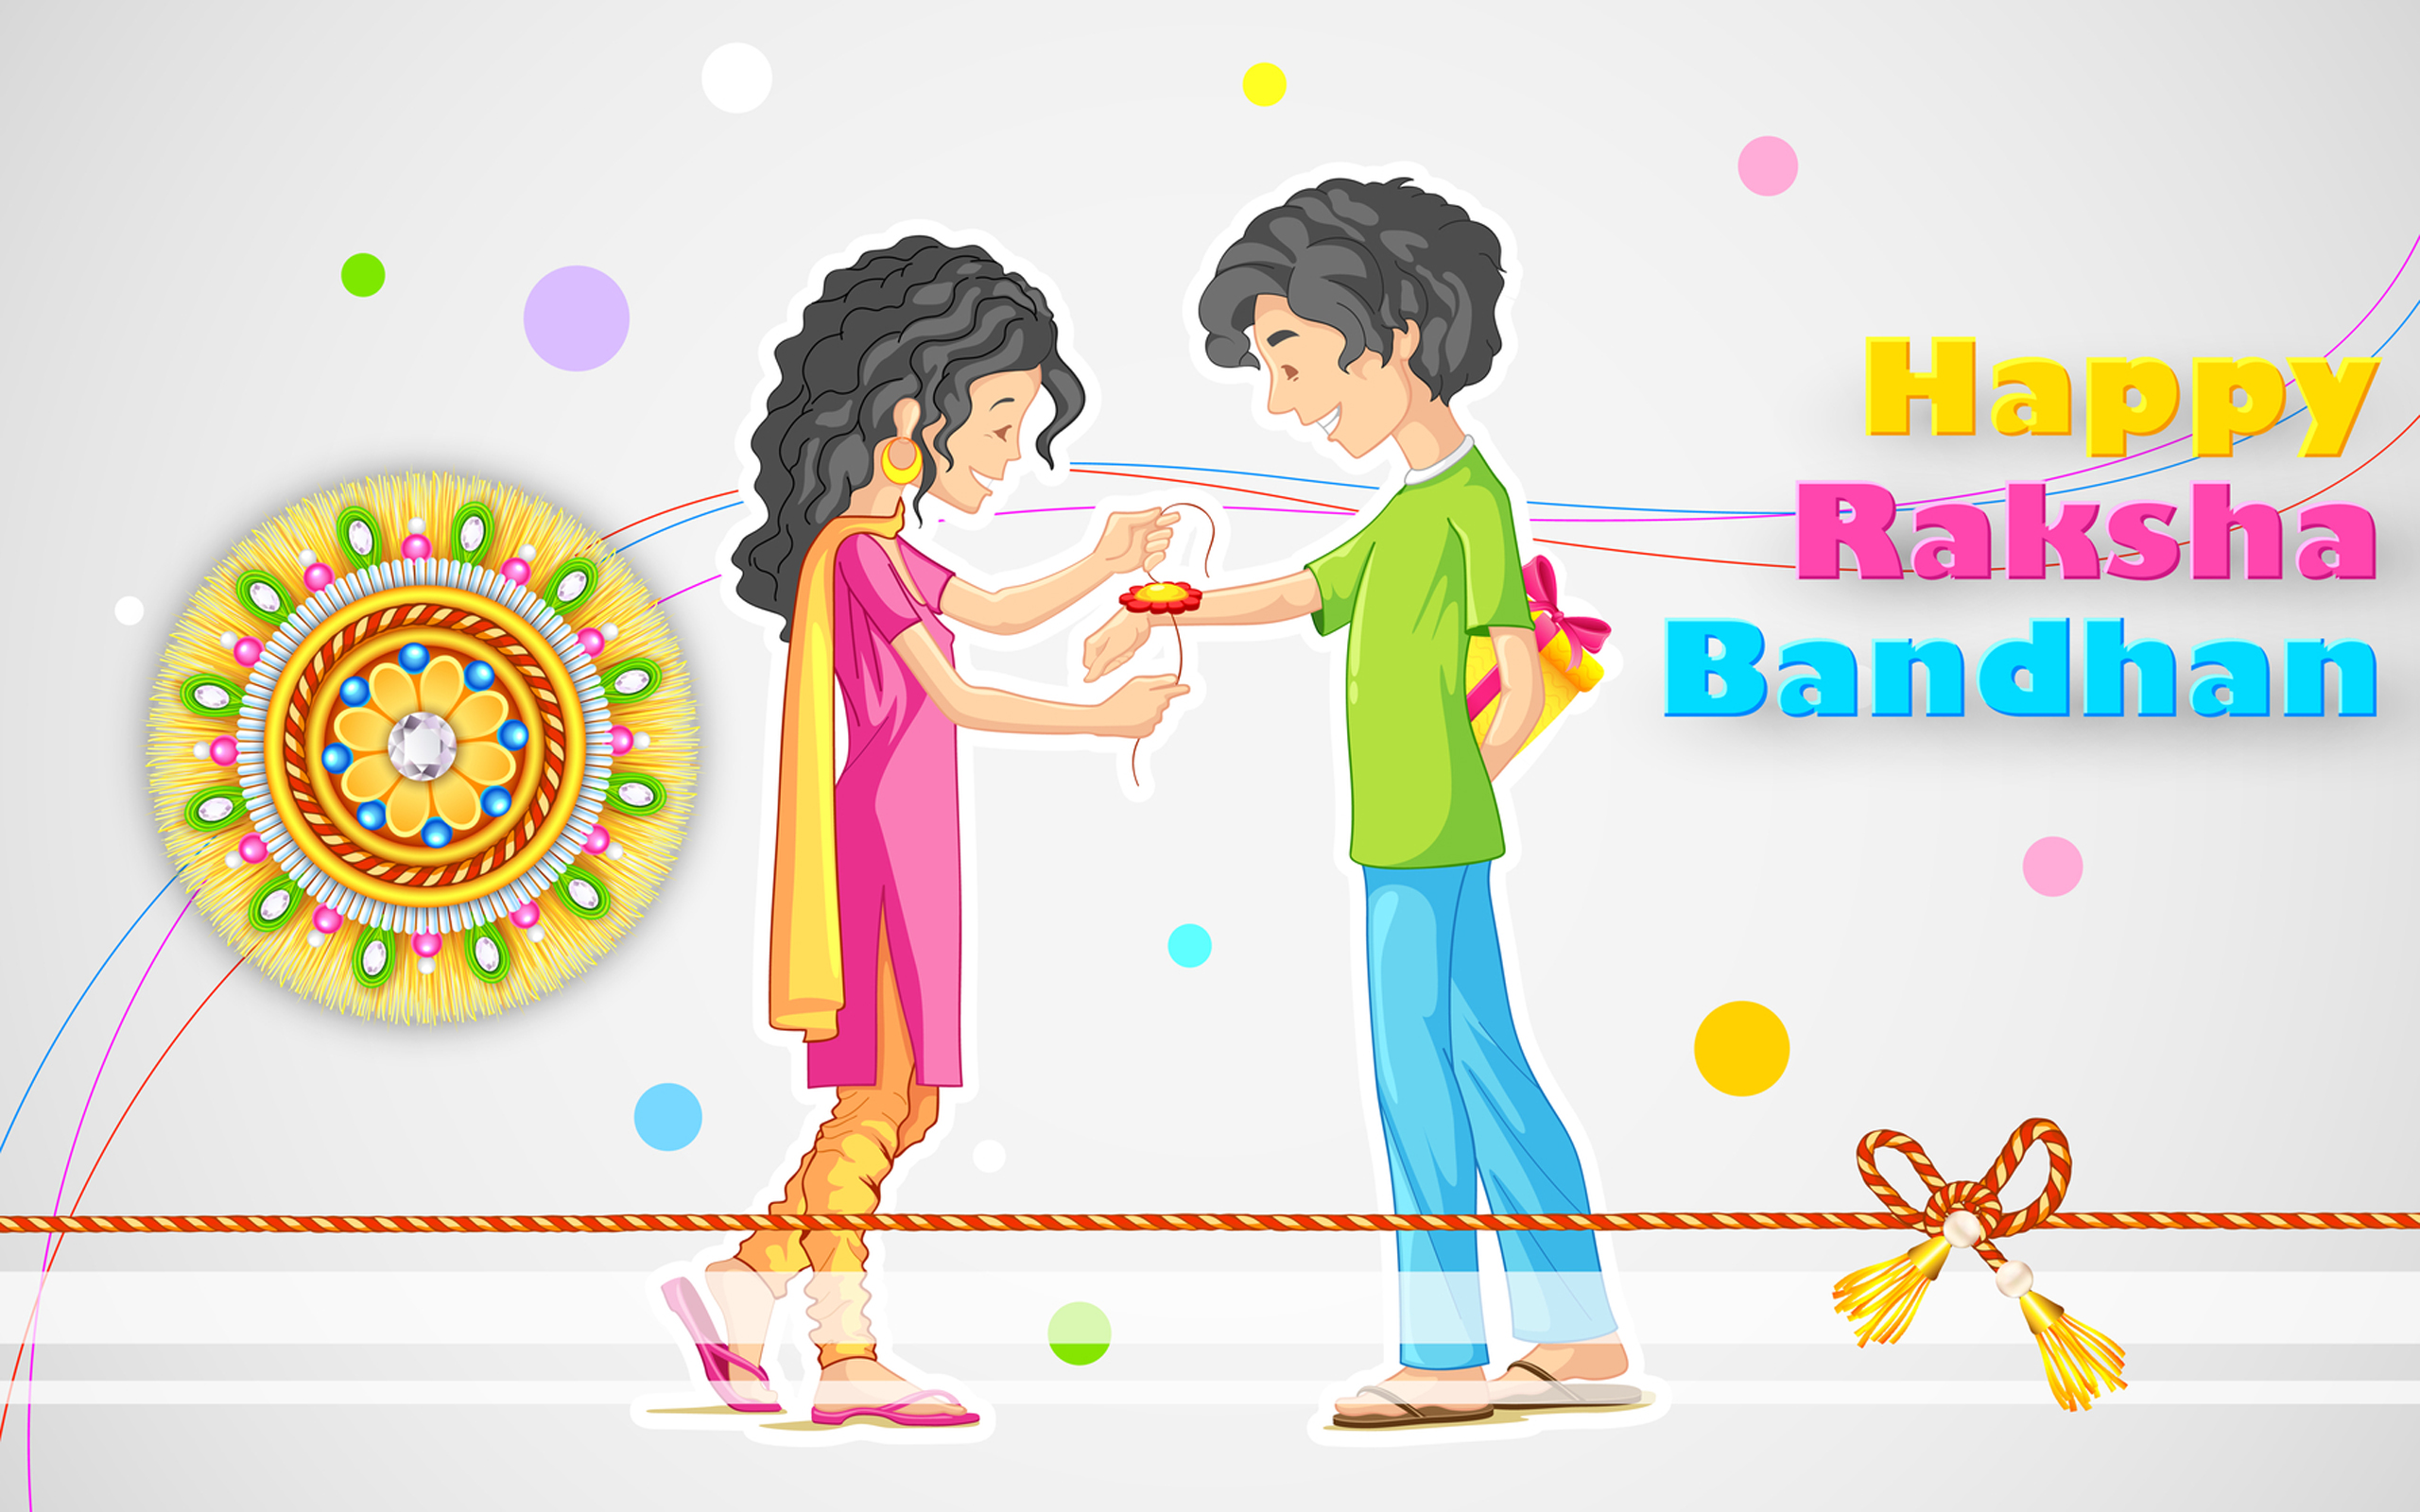 Happy Raksha Bandhan Hd Images Wallpapers Free Download Techicy